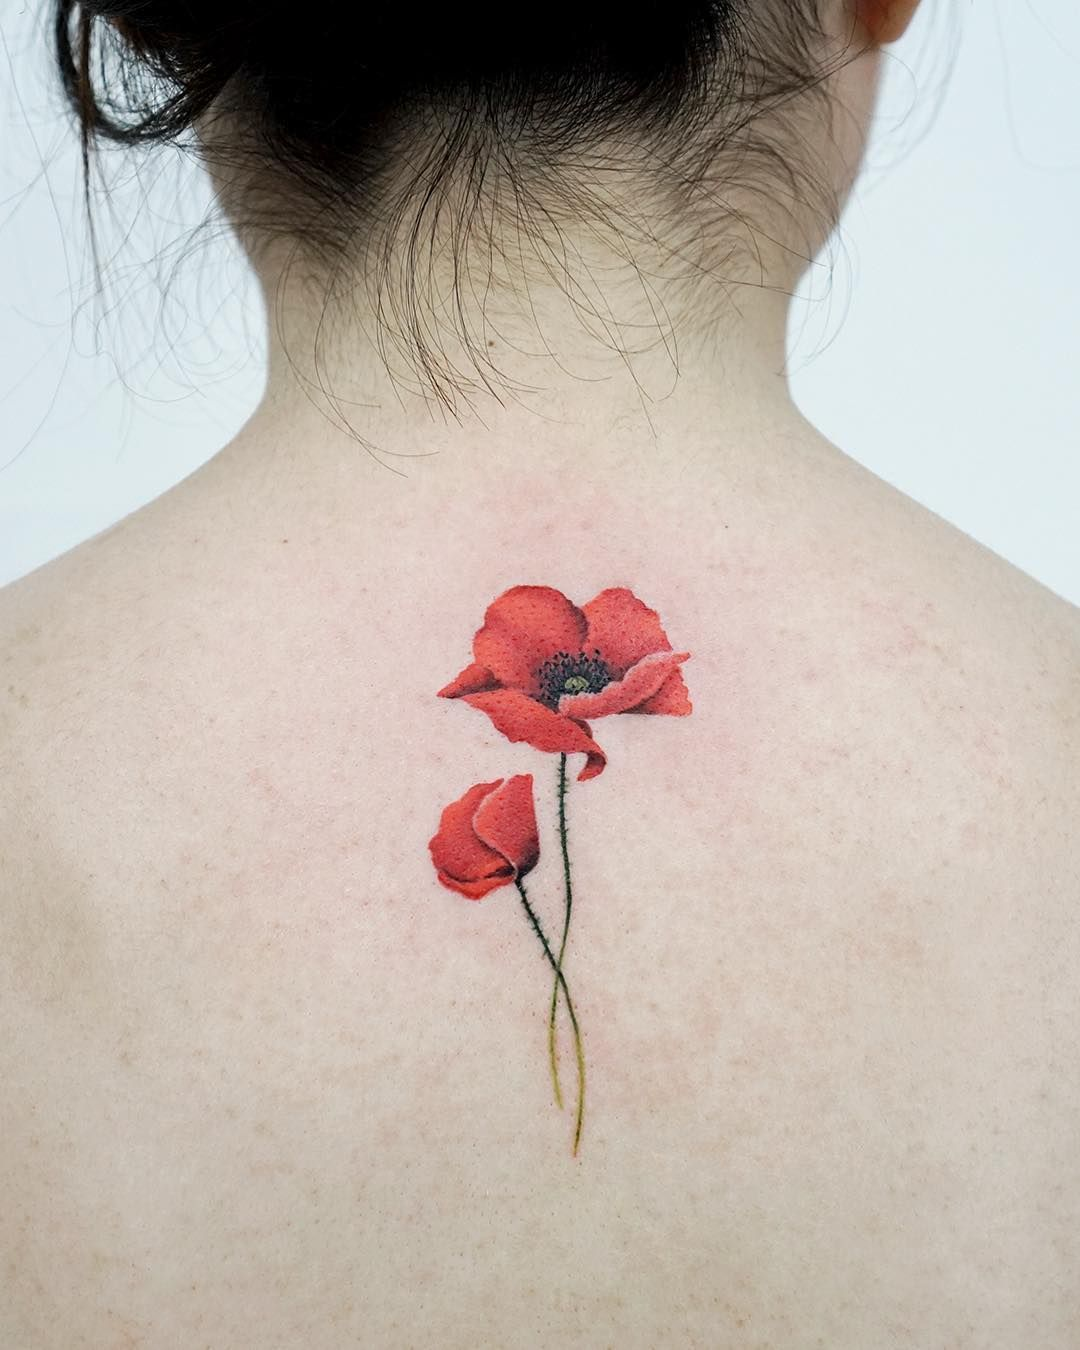 Mas De 20 Tatuajes Fascinantes Que Podriamos Mirar Para Siempre In 2020 Poppies Tattoo Tattoos Red Poppy Tattoo